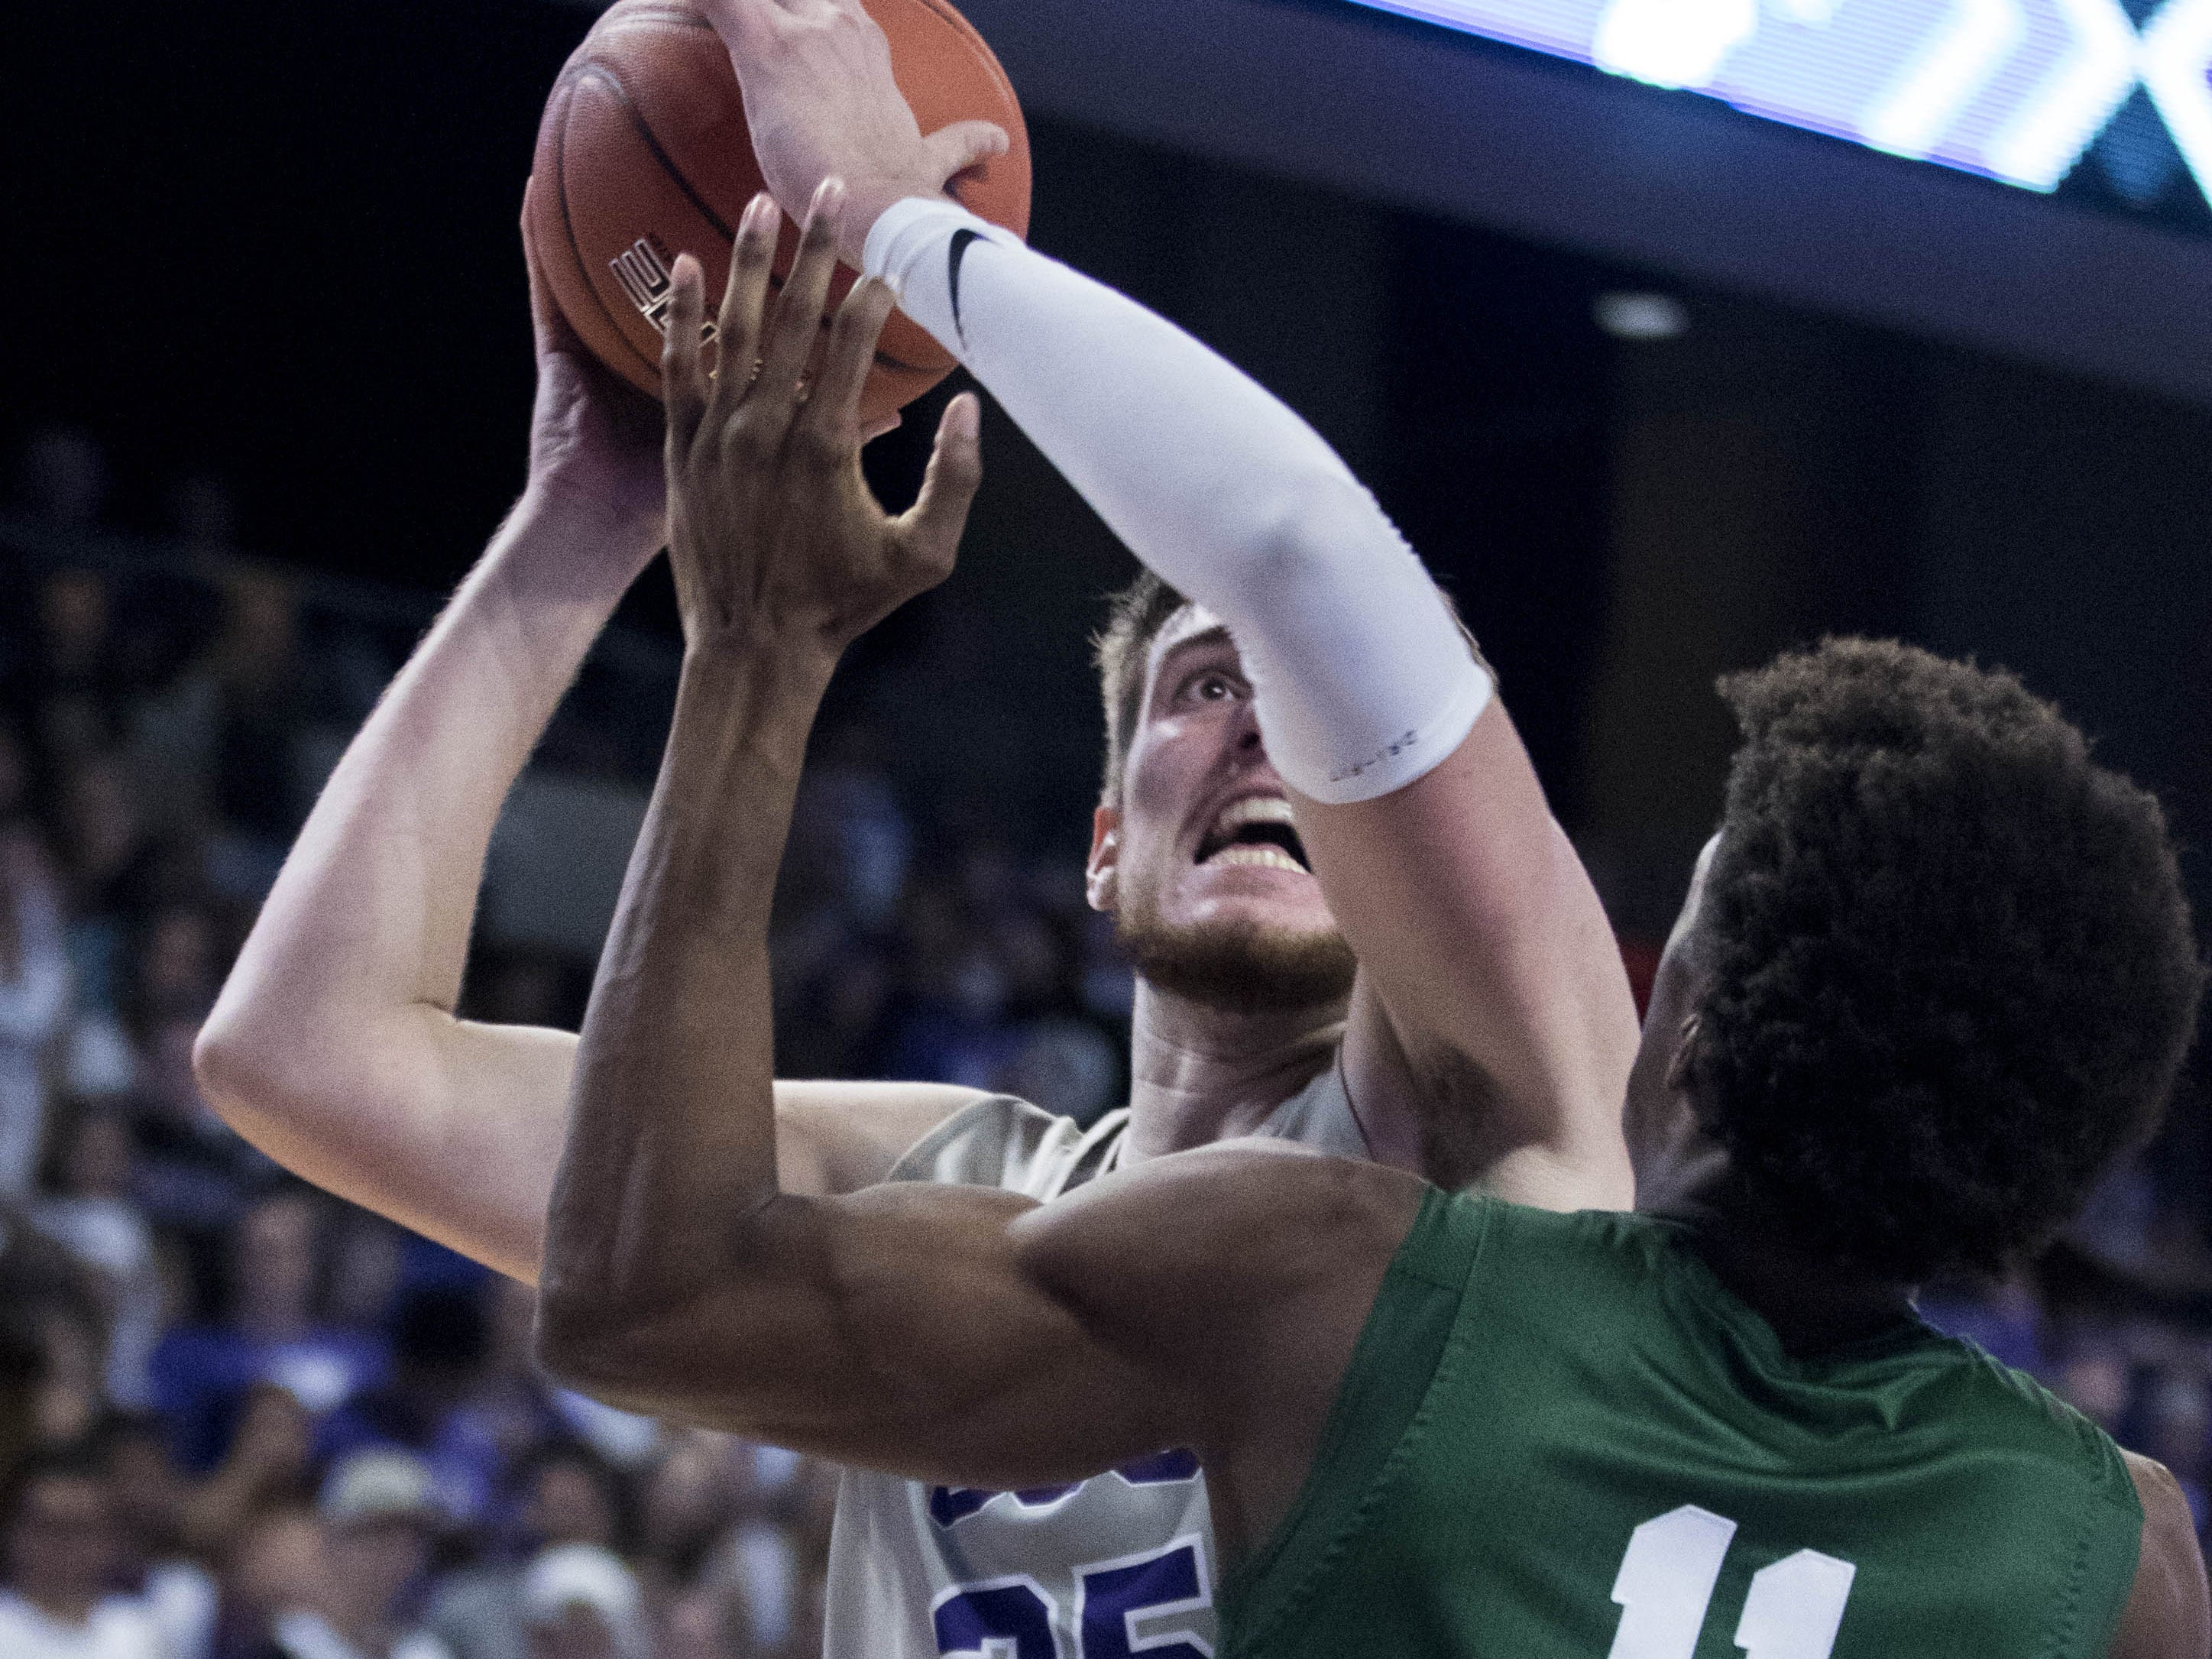 Grand Canyon University's Alessandro Lever looks to the basket against Jacksonville's Jalyn Hinton the second half of their game in Phoenix, Monday, Nov. 11, 2018.